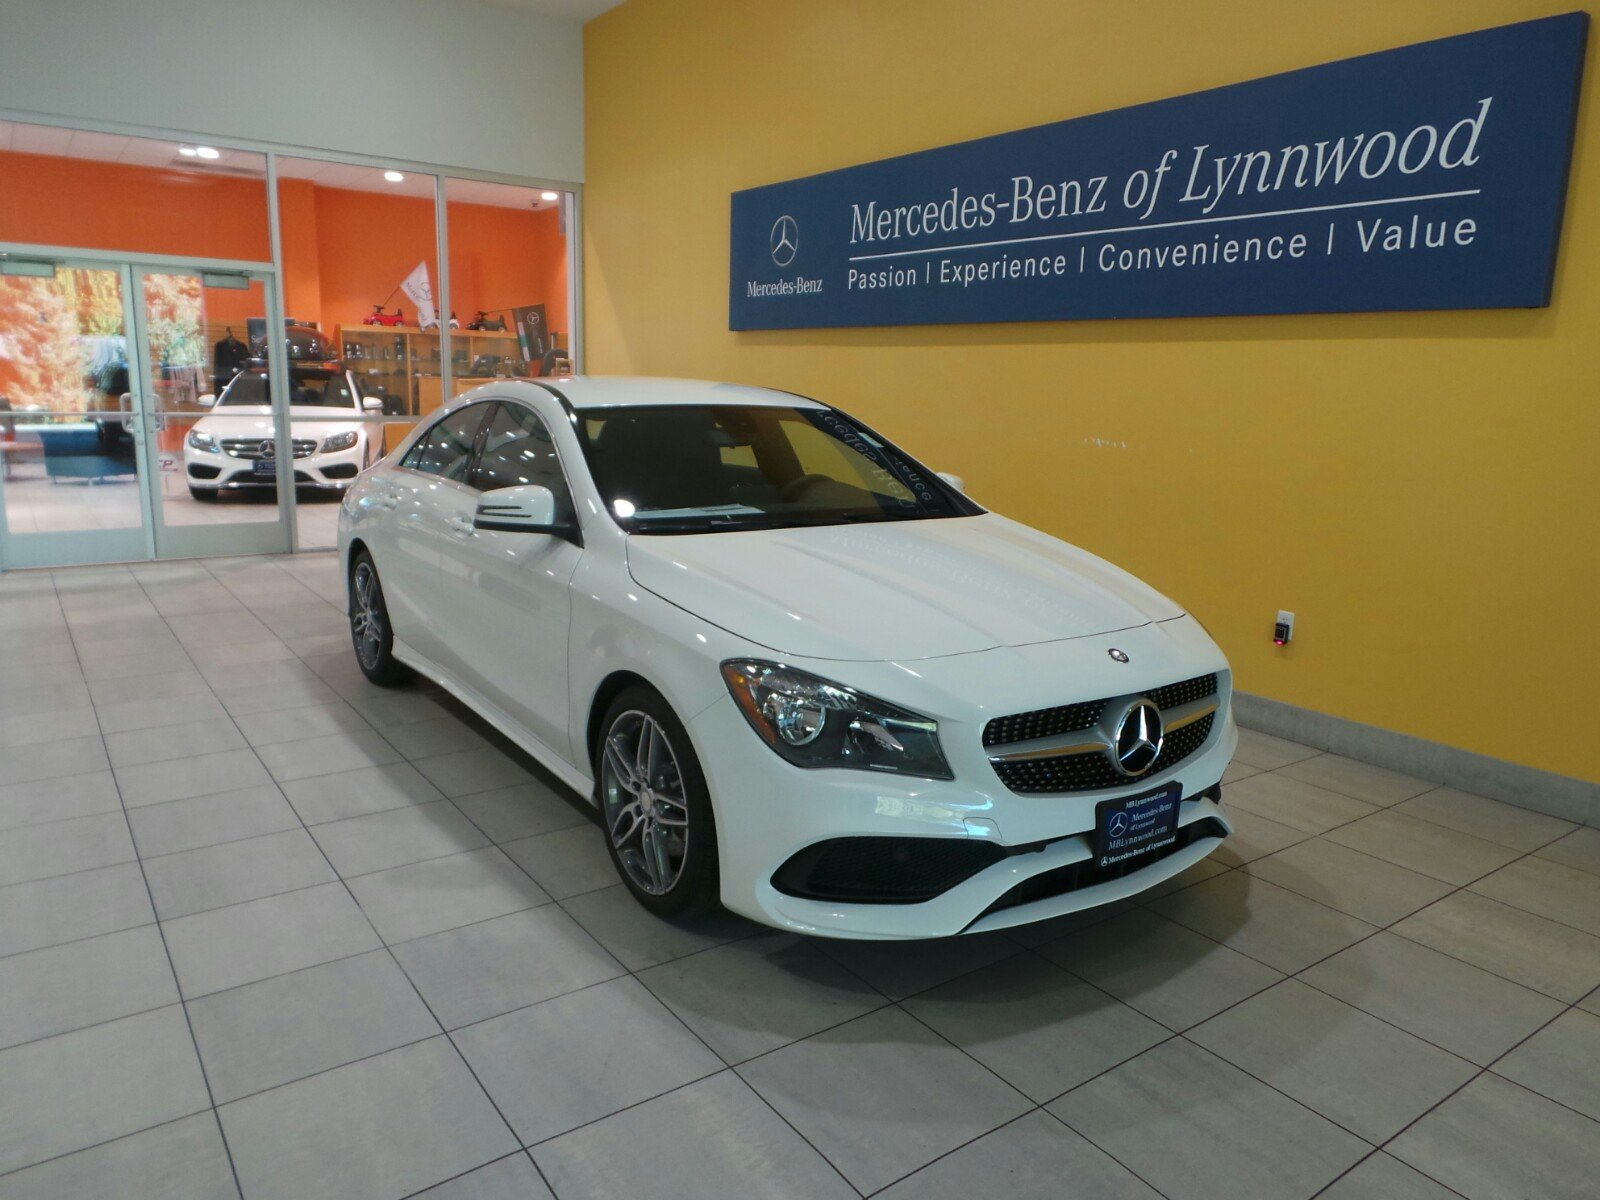 new 2017 mercedes benz cla cla 250 sport coupe in lynnwood 27693 mercedes benz of lynnwood. Black Bedroom Furniture Sets. Home Design Ideas